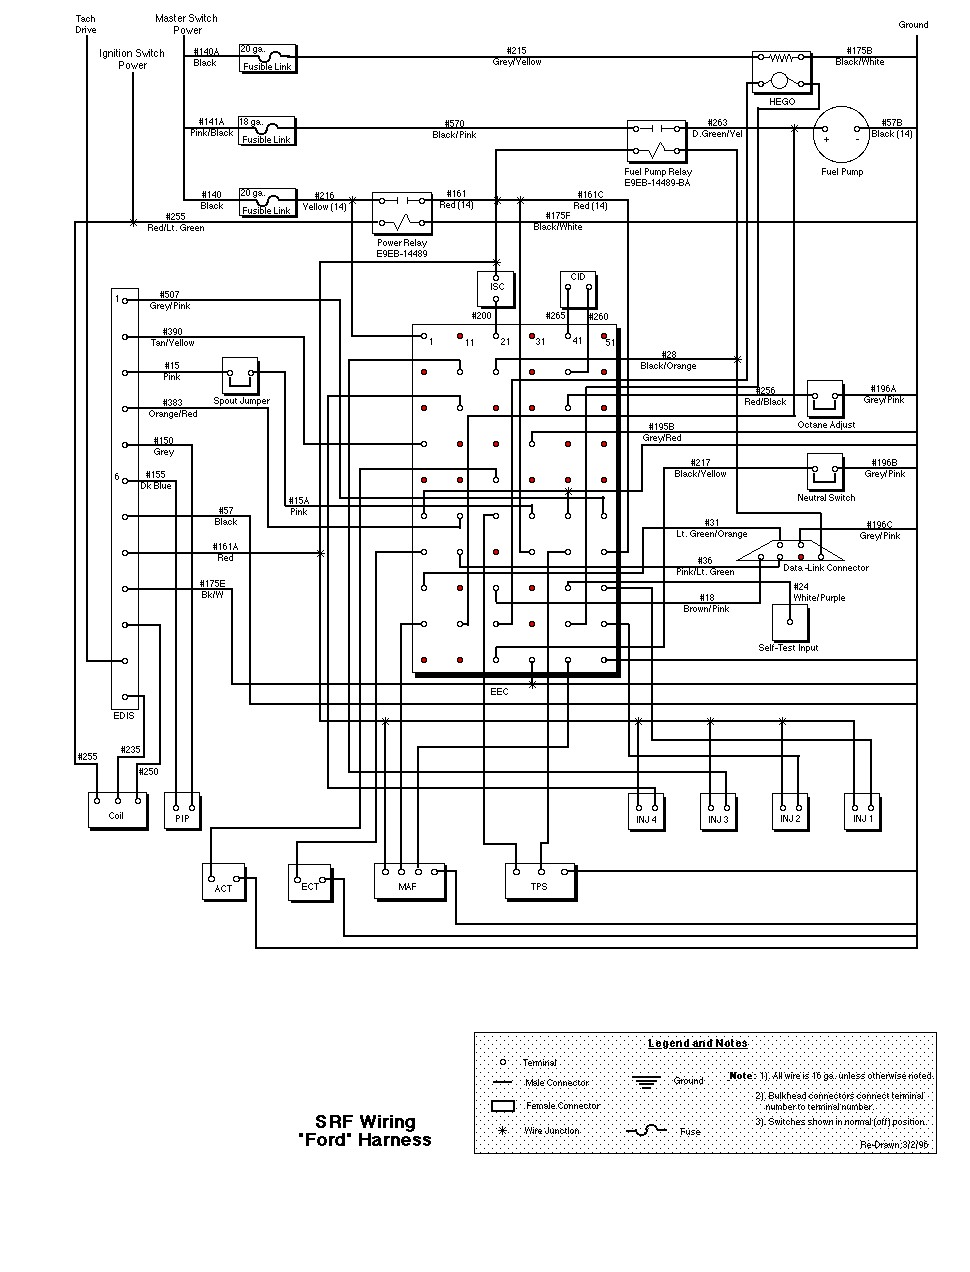 Ford 8000 Tractor Wiring Diagram Opinions About Naa 1993 L8000 Rh Aiandco Co Old 800